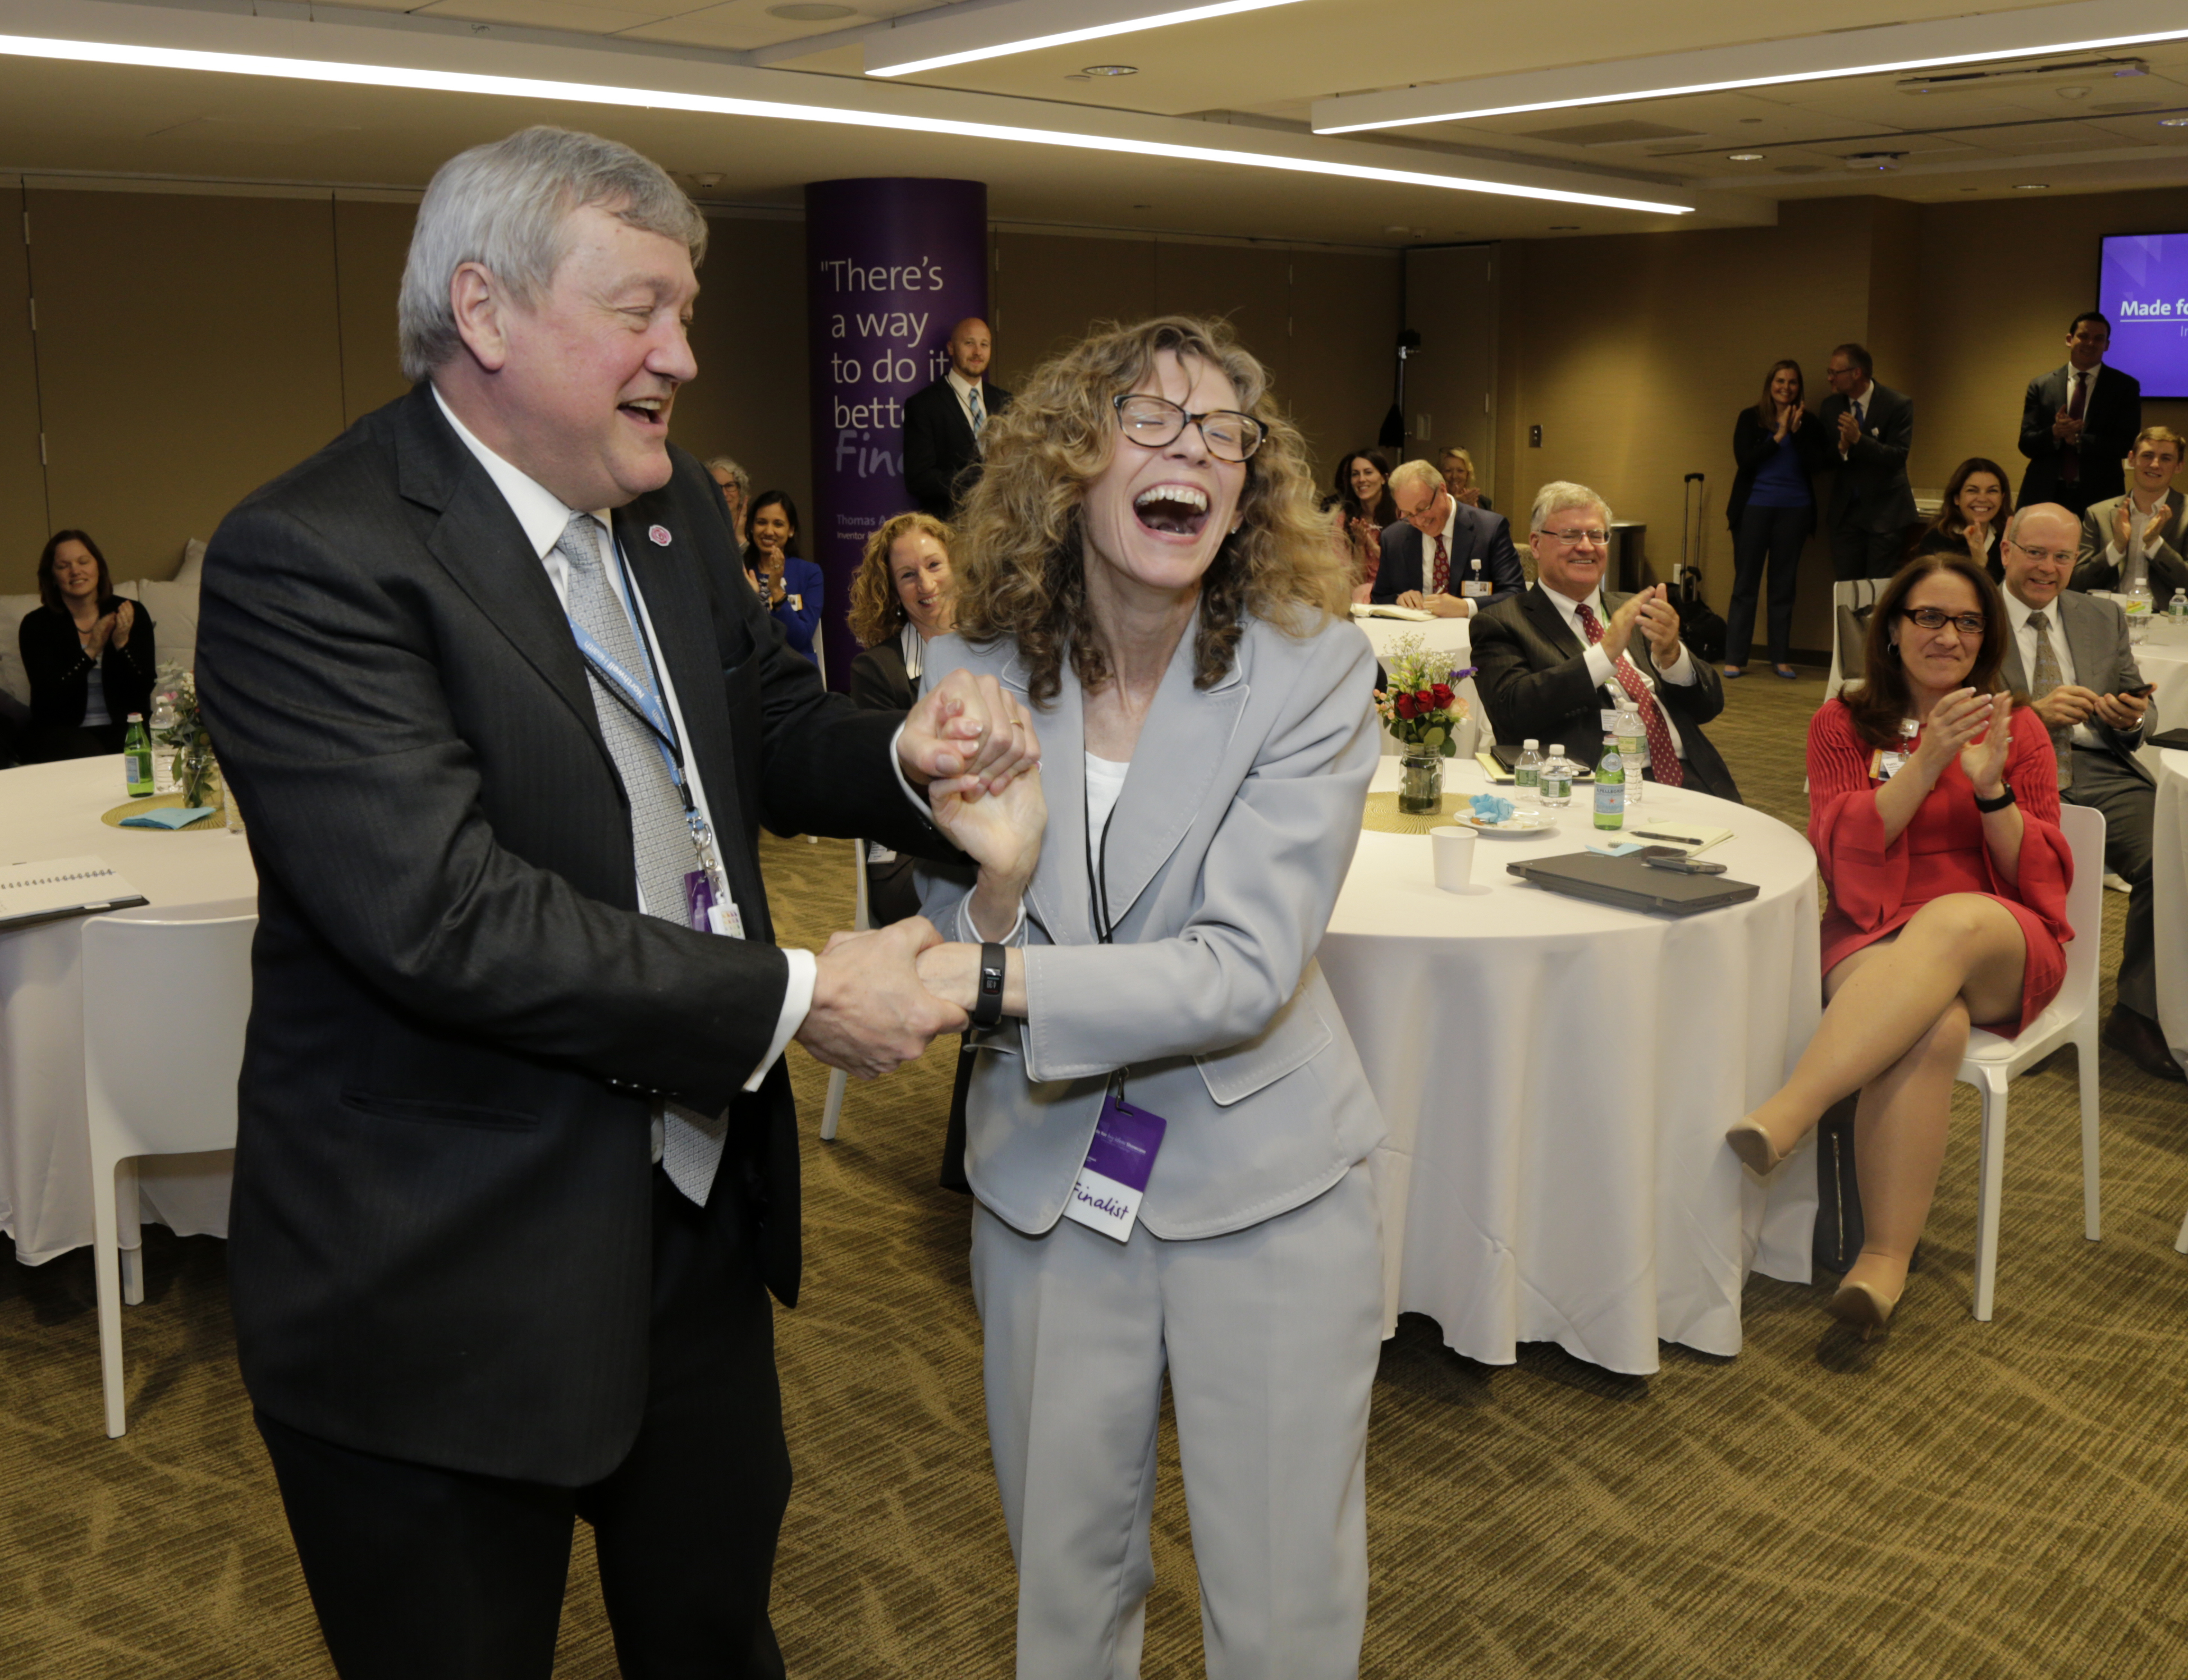 Northwell rewards innovative employee projects with $500K